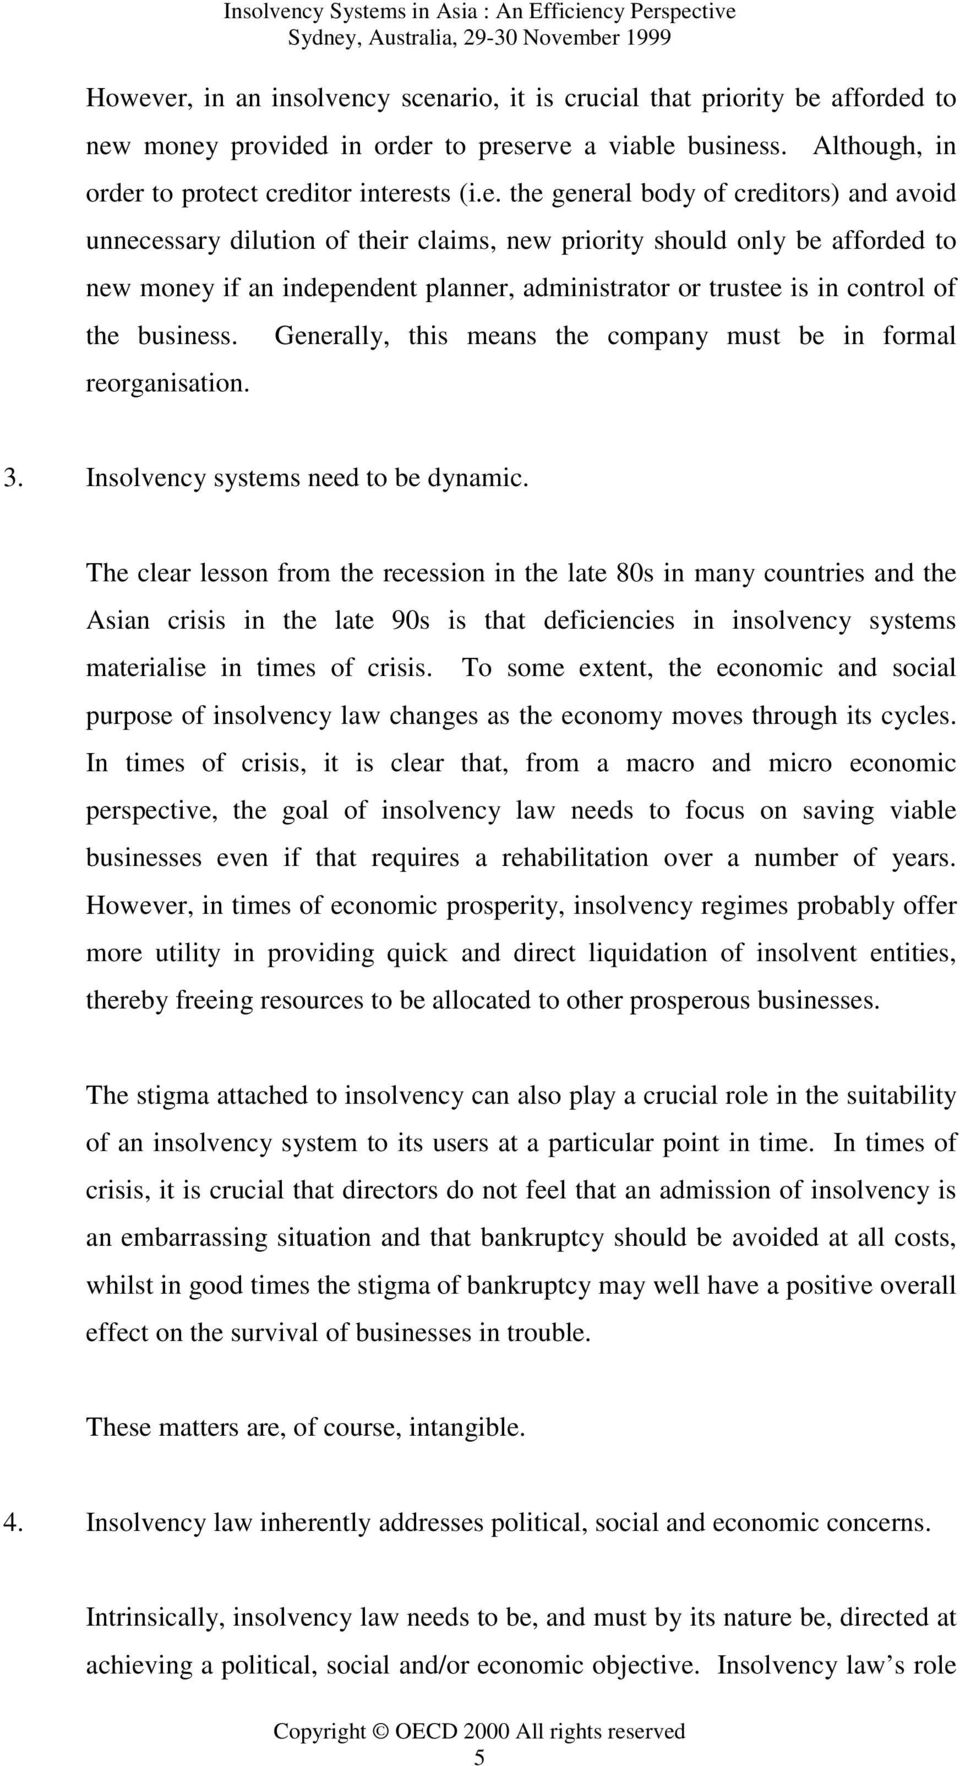 business. Generally, this means the company must be in formal reorganisation. 3. Insolvency systems need to be dynamic.